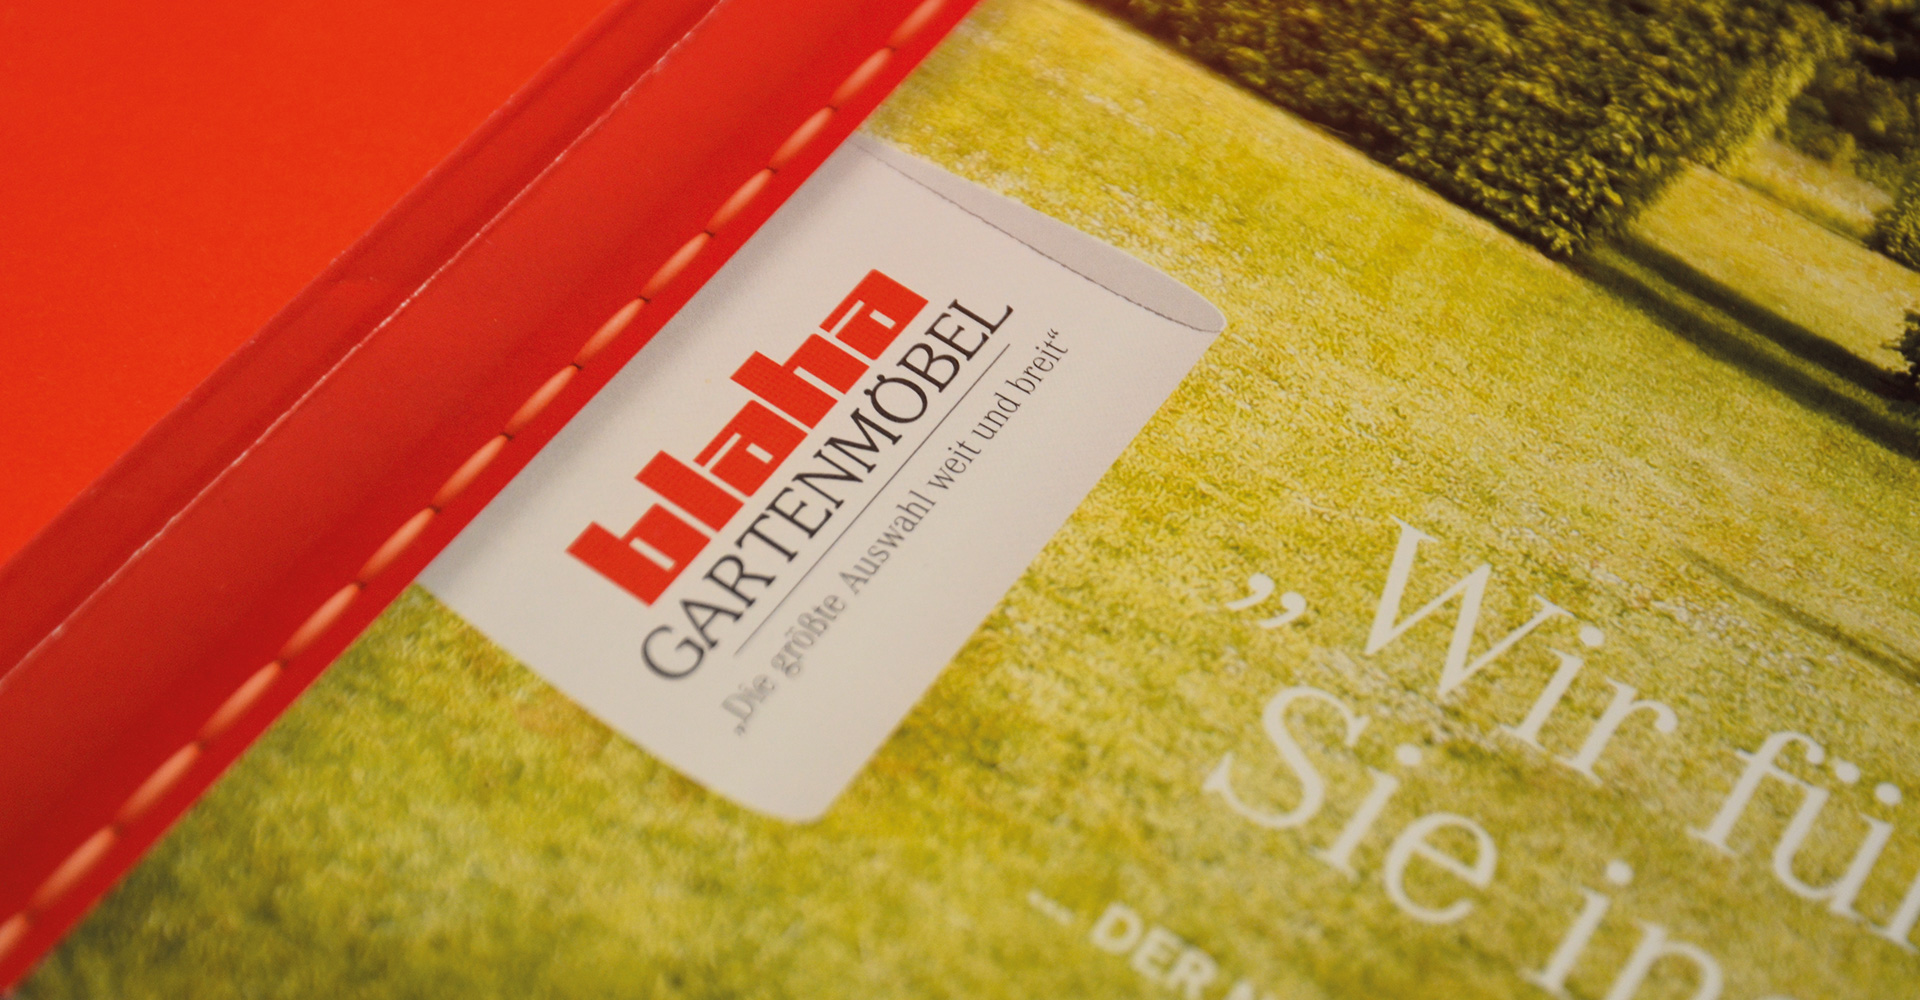 BLAHA Gartenmöbel _ corporate design